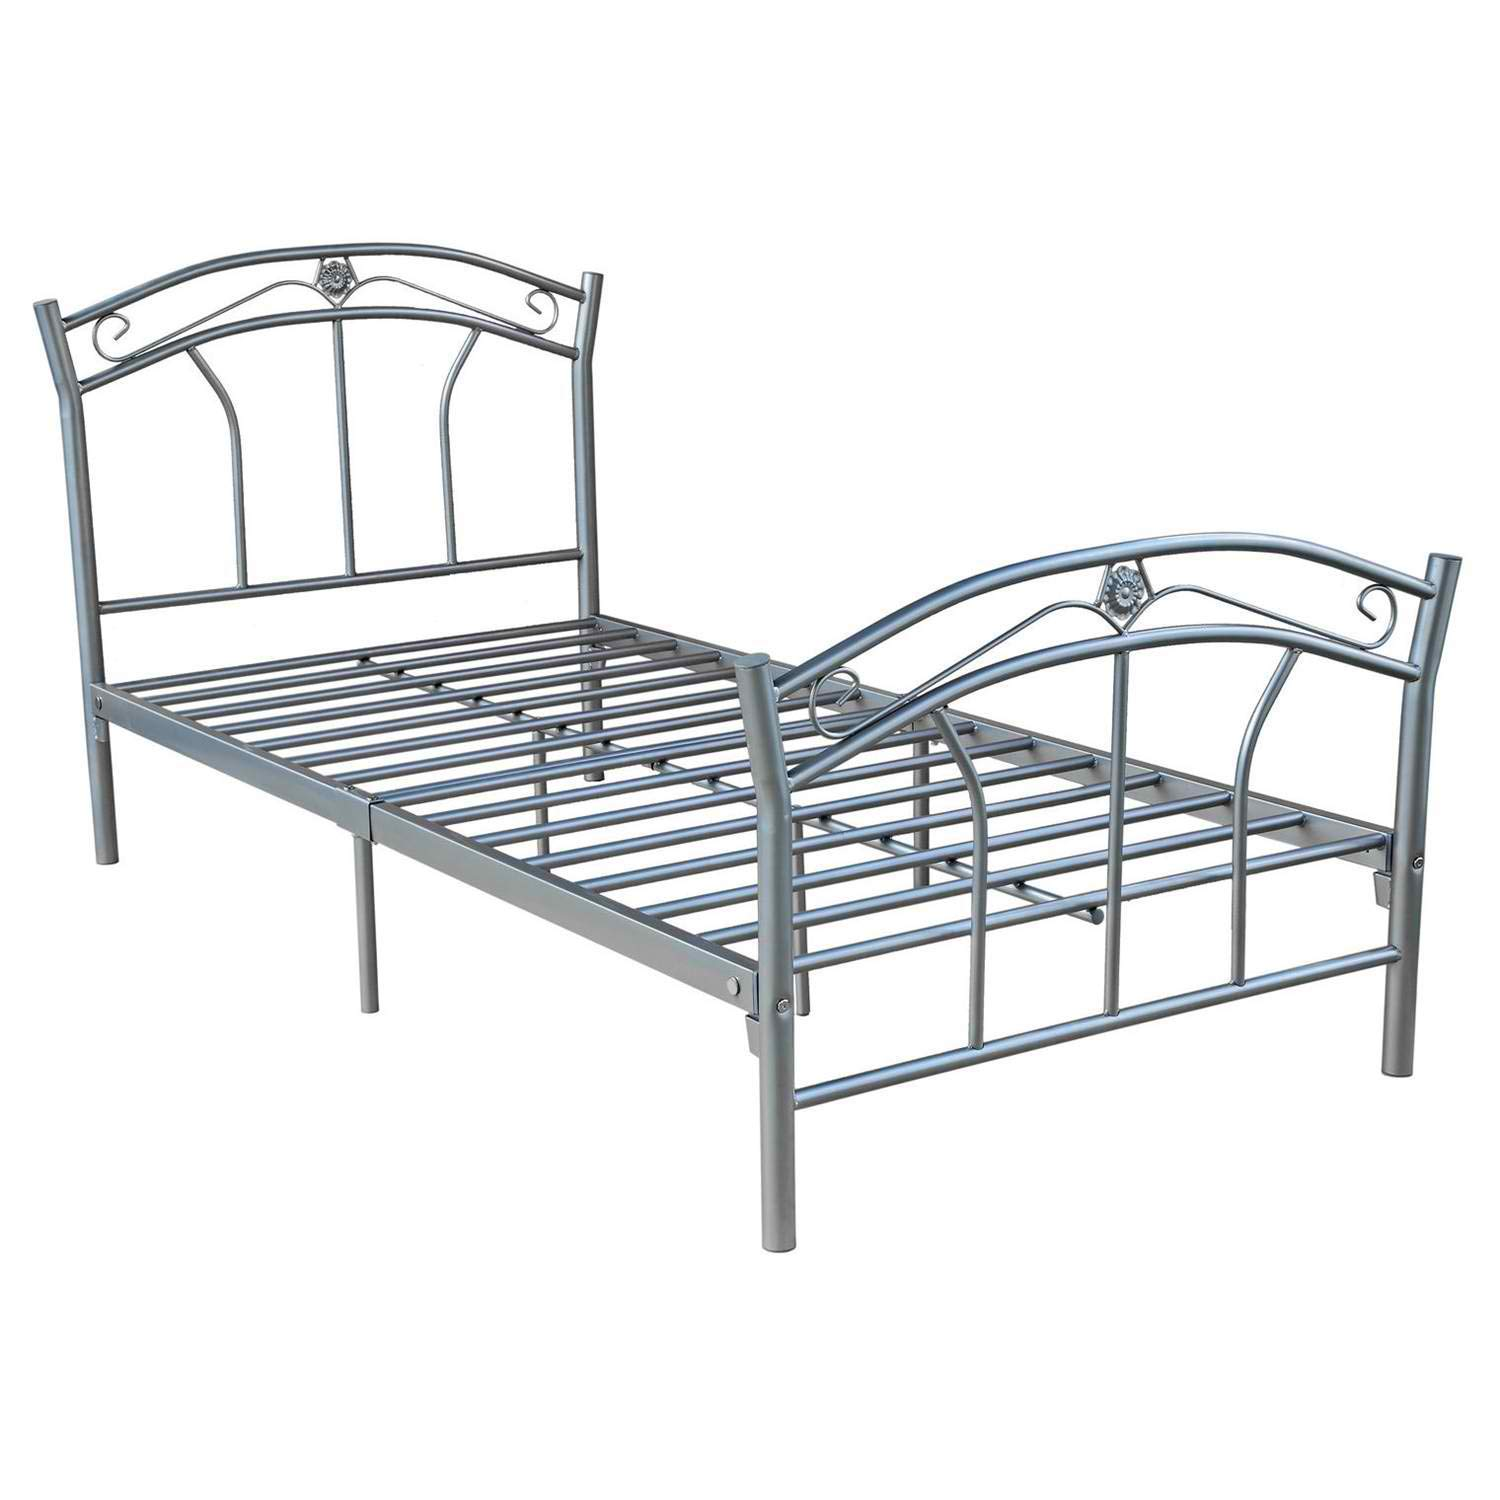 BeUniqueToday Twin Size Silver Metal Platform Bed Frame with Headboard and Footboard, Strong and Sturdy Metal Framework Bed Frame, Features A Contemporary Style and Can Complement Any Room Decor